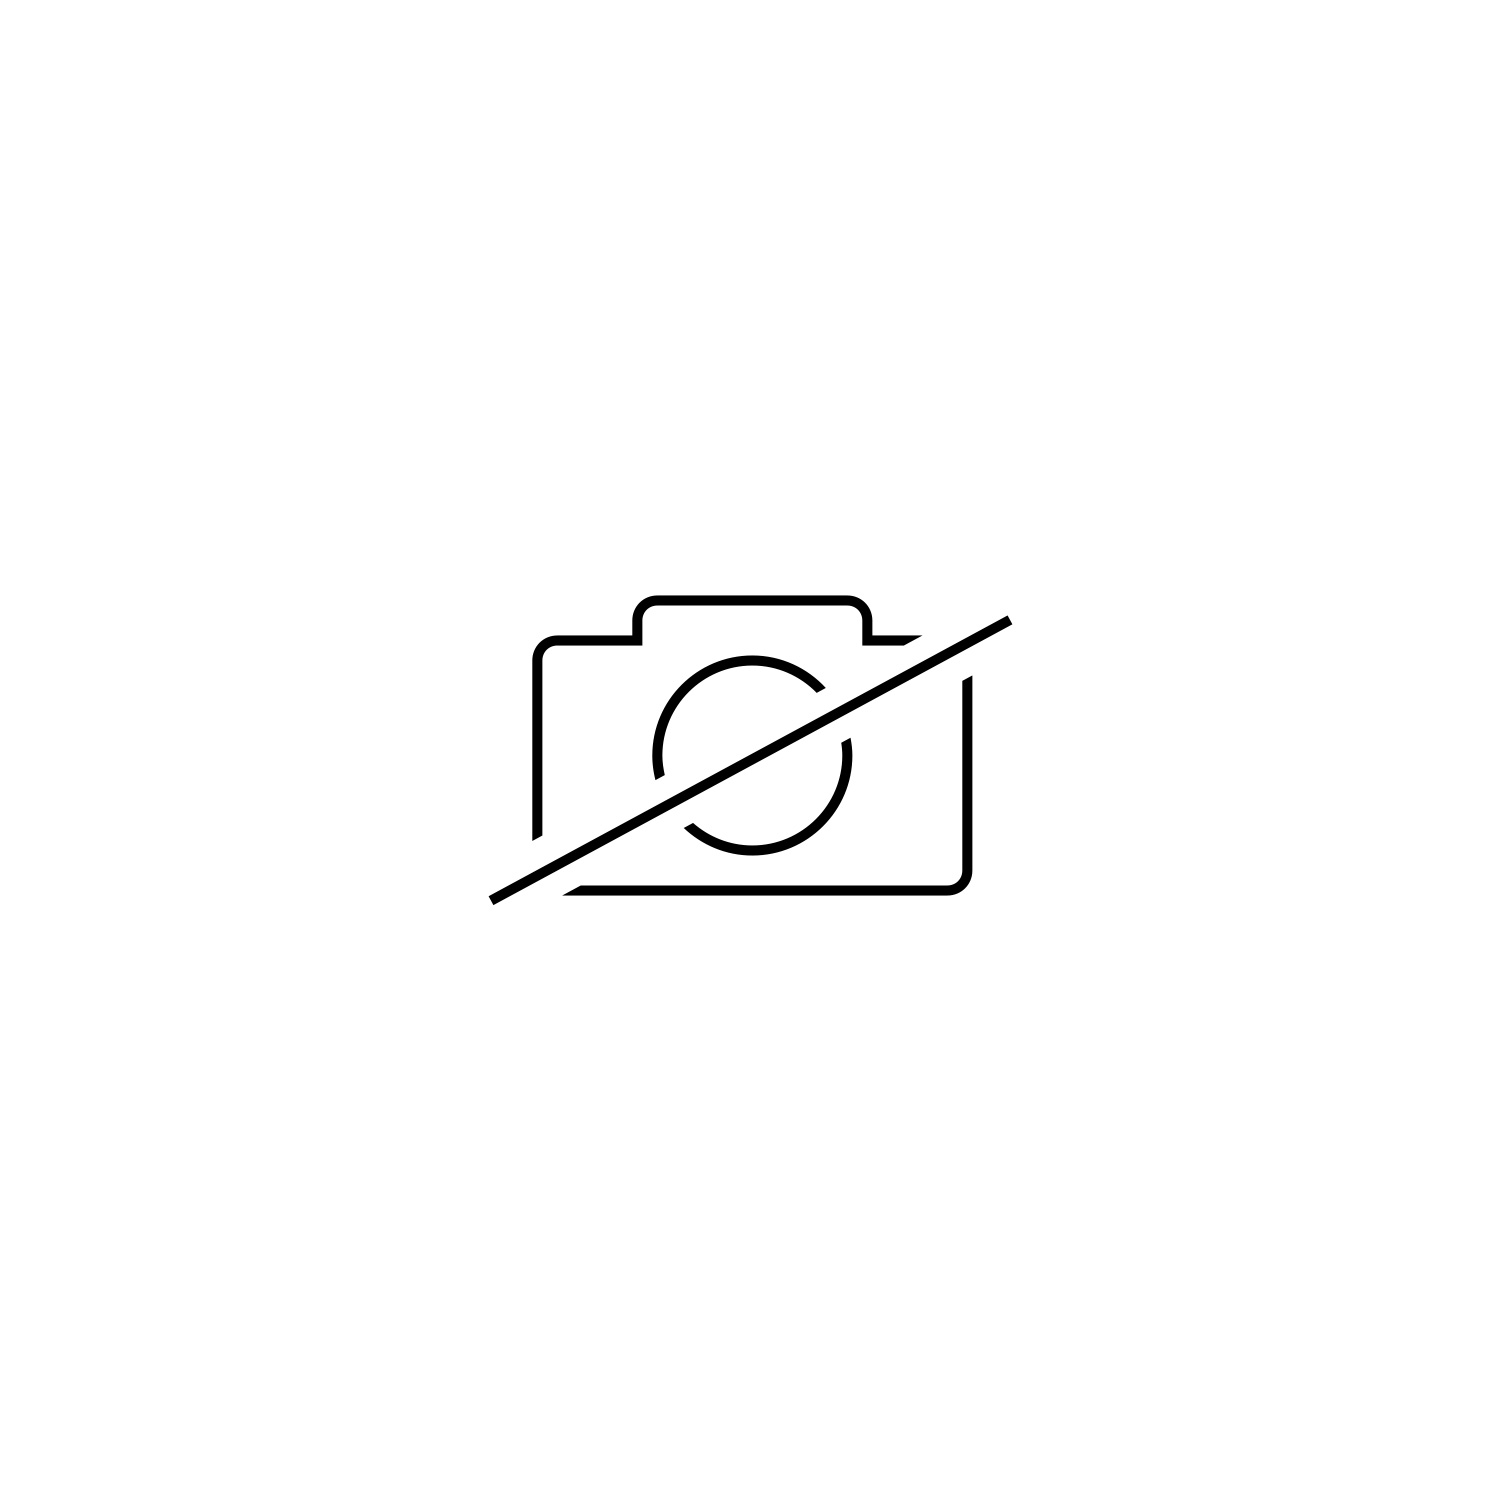 quattro outdoorjacket, Mens, grey/black, L